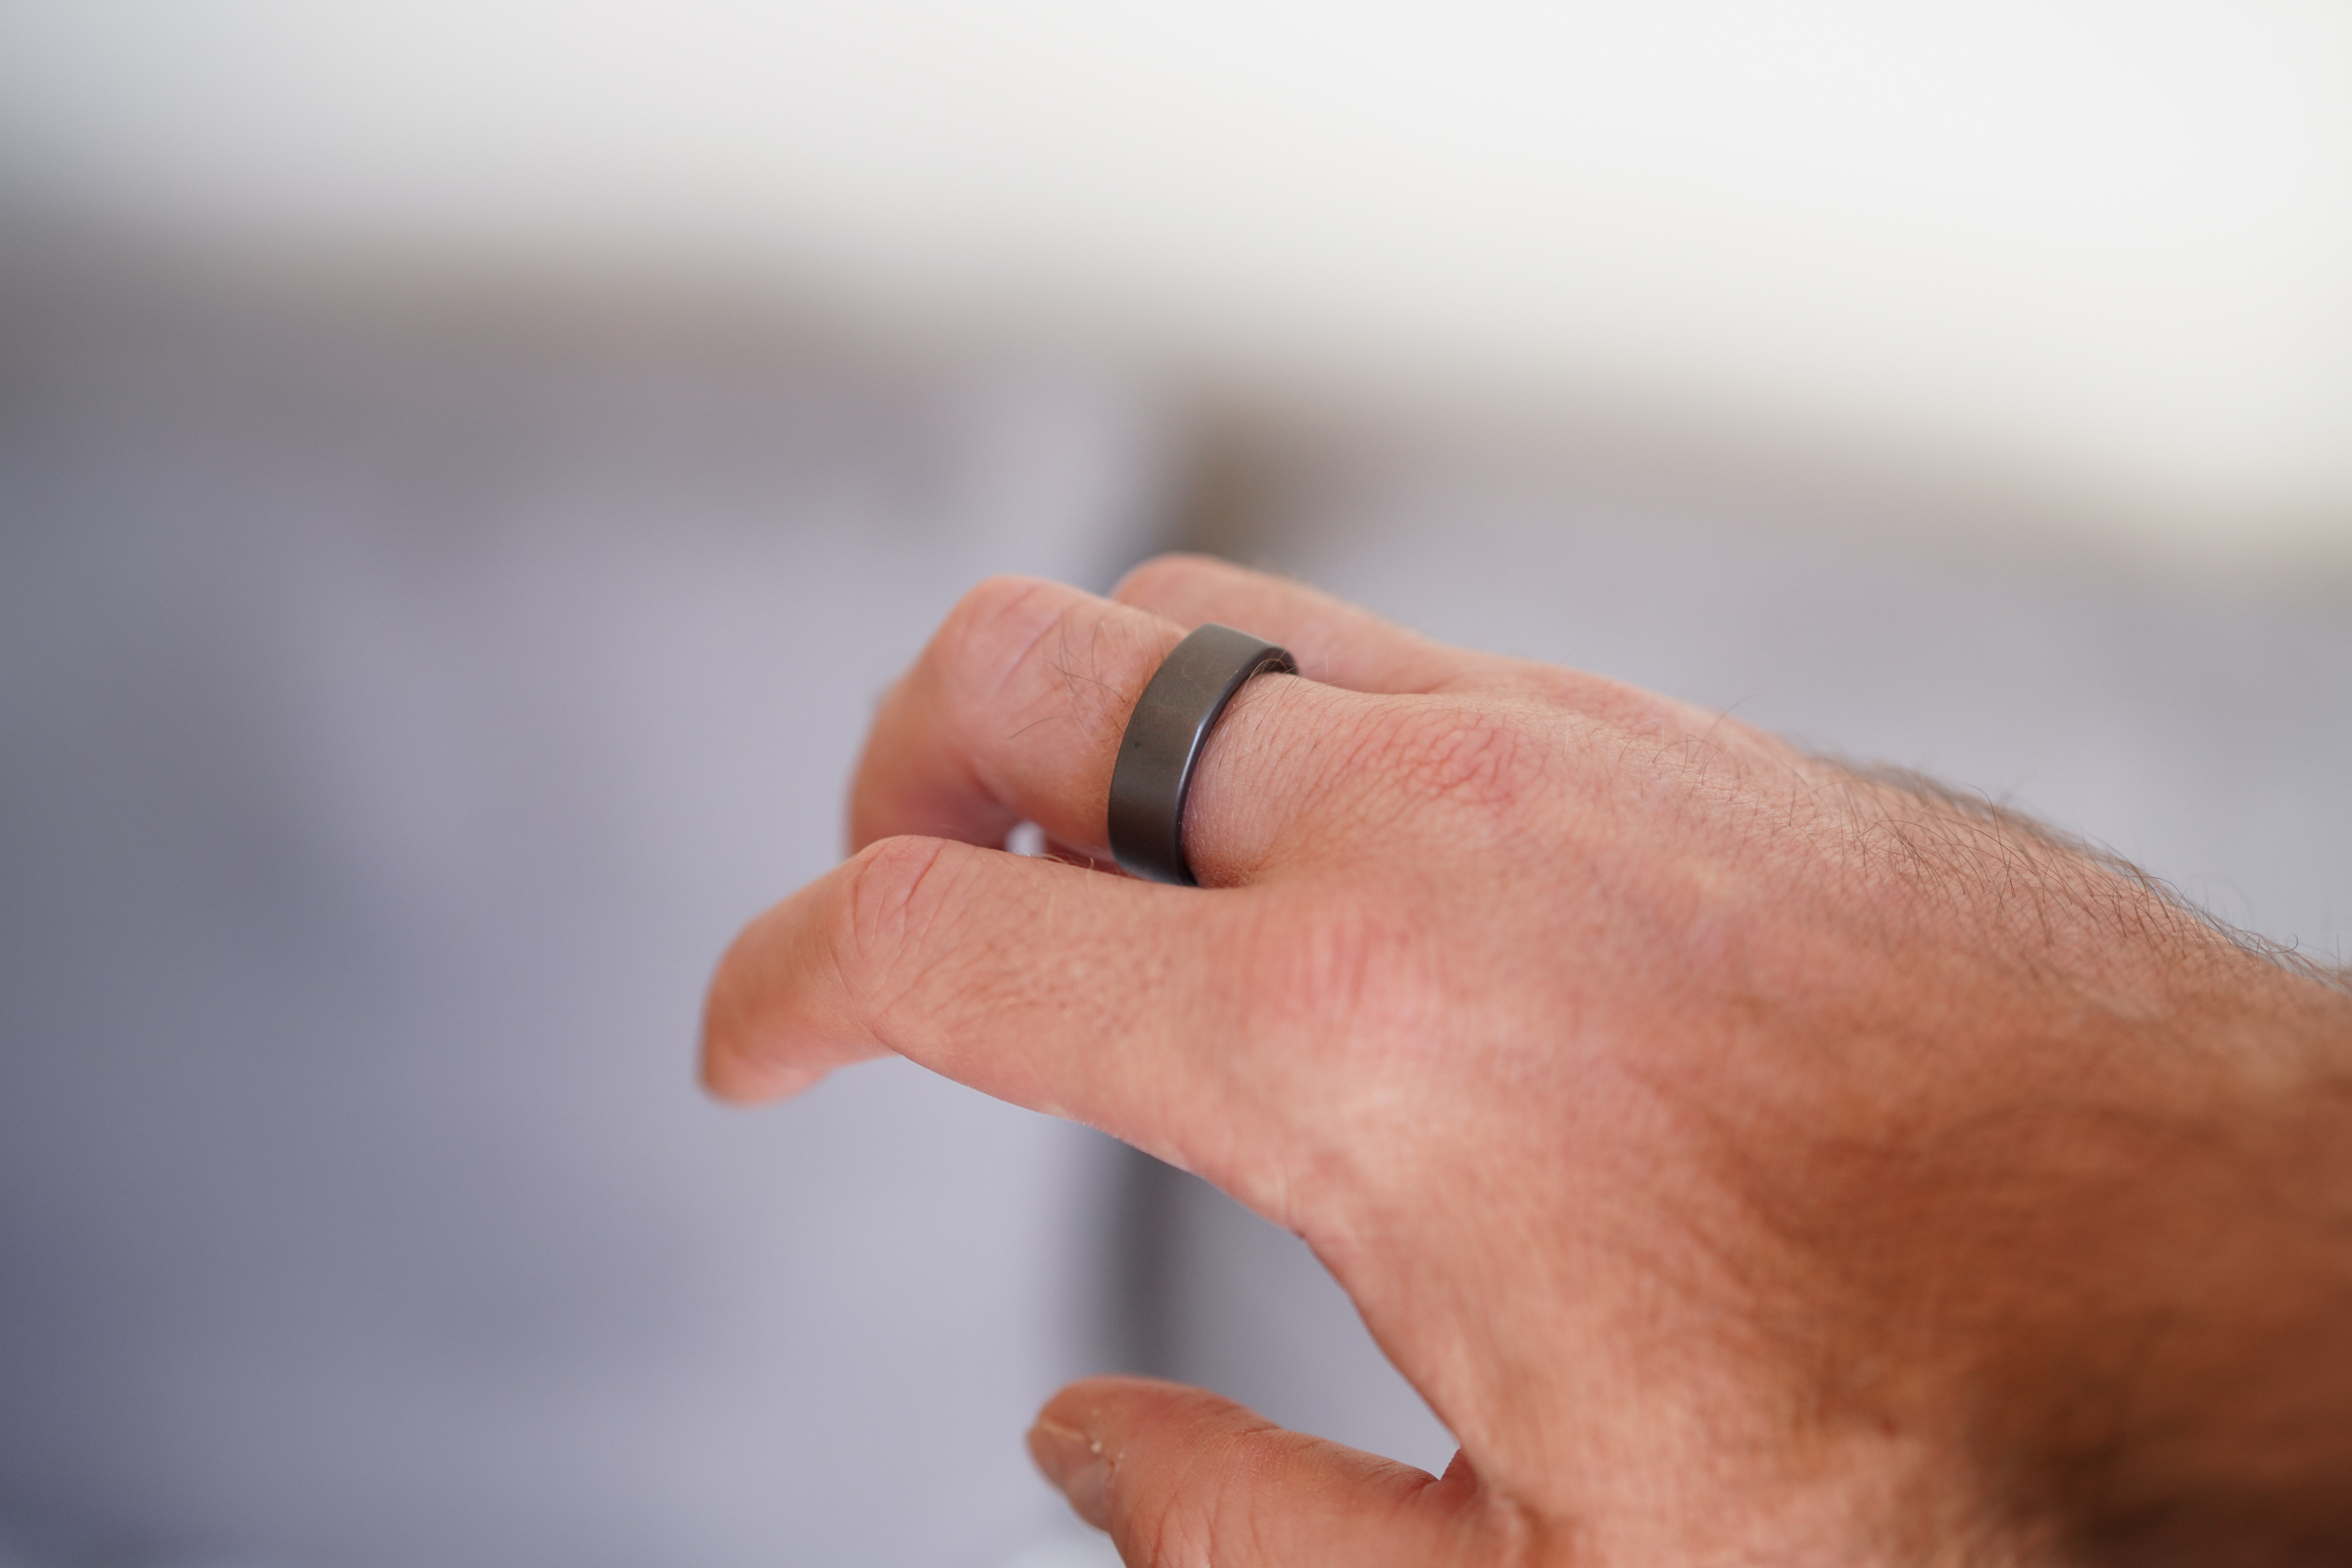 The Oura Ring is the personal health tracking device to beat in 2020 2